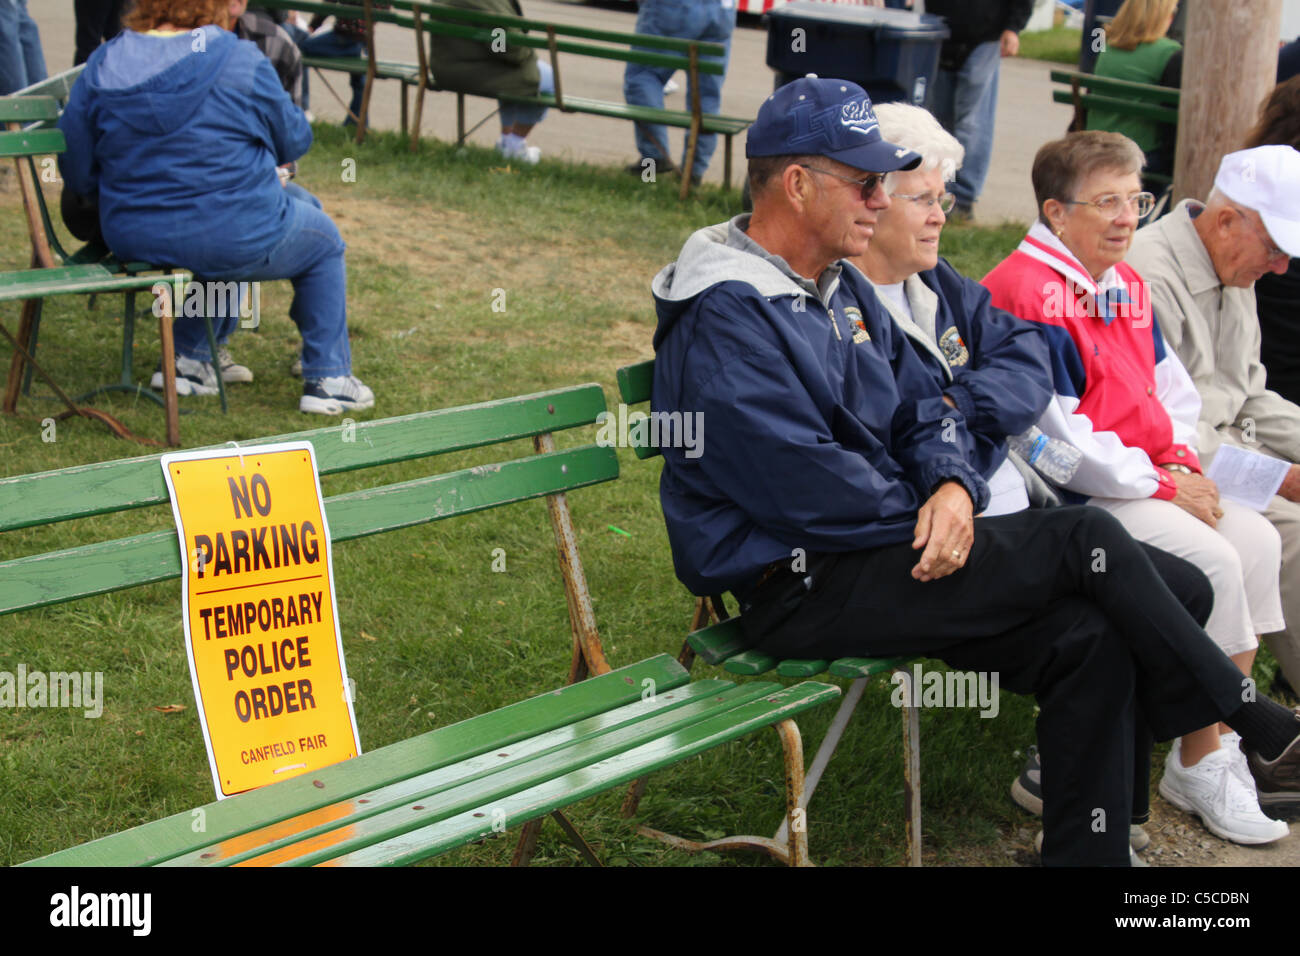 No Parking sign on a park bench. Canfield Fair. Mahoning County Fair. Canfield, Ohio, USA. No Parking - Temporary - Stock Image